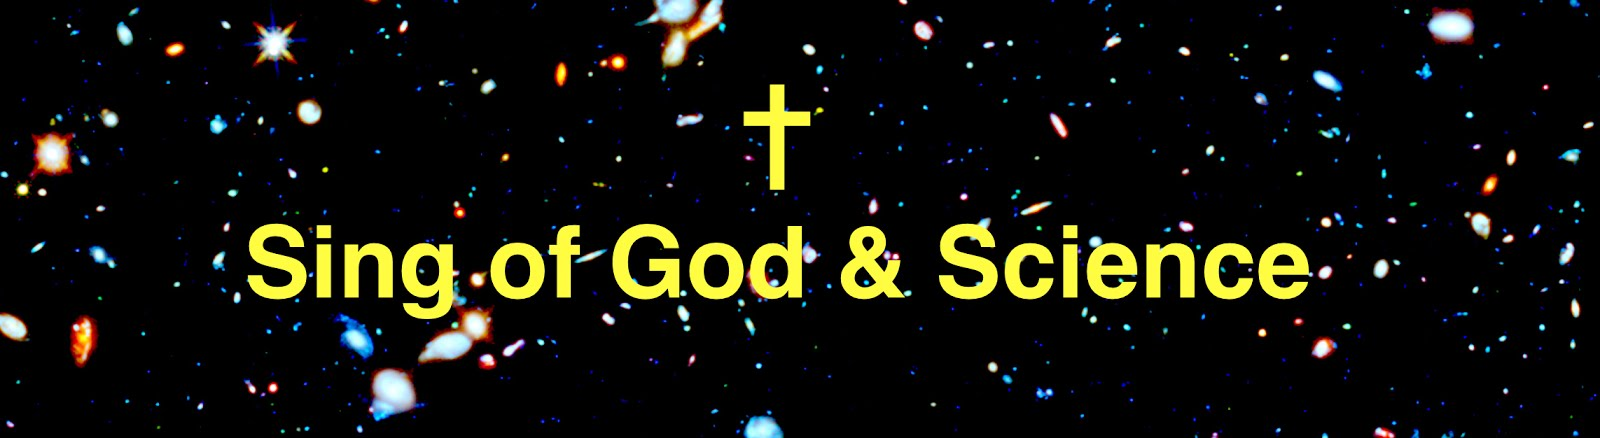 Companion Site: Sing of God and Science